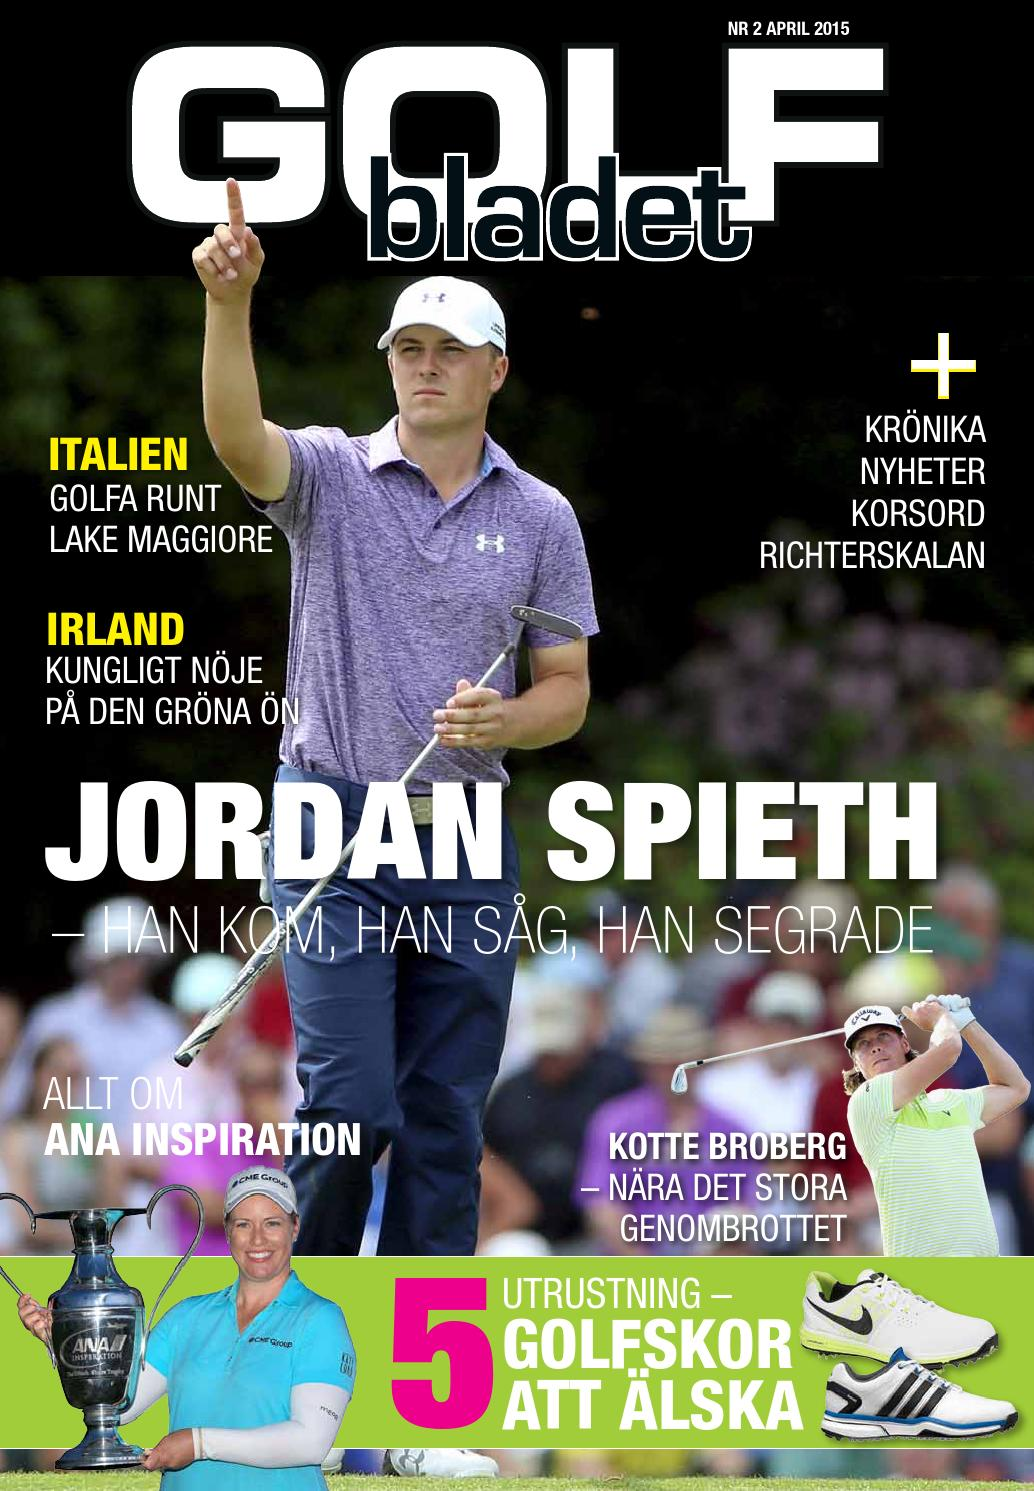 finest selection 6df75 8d1f2 Golfbladet 2015 2 by Fredrik Richter - issuu